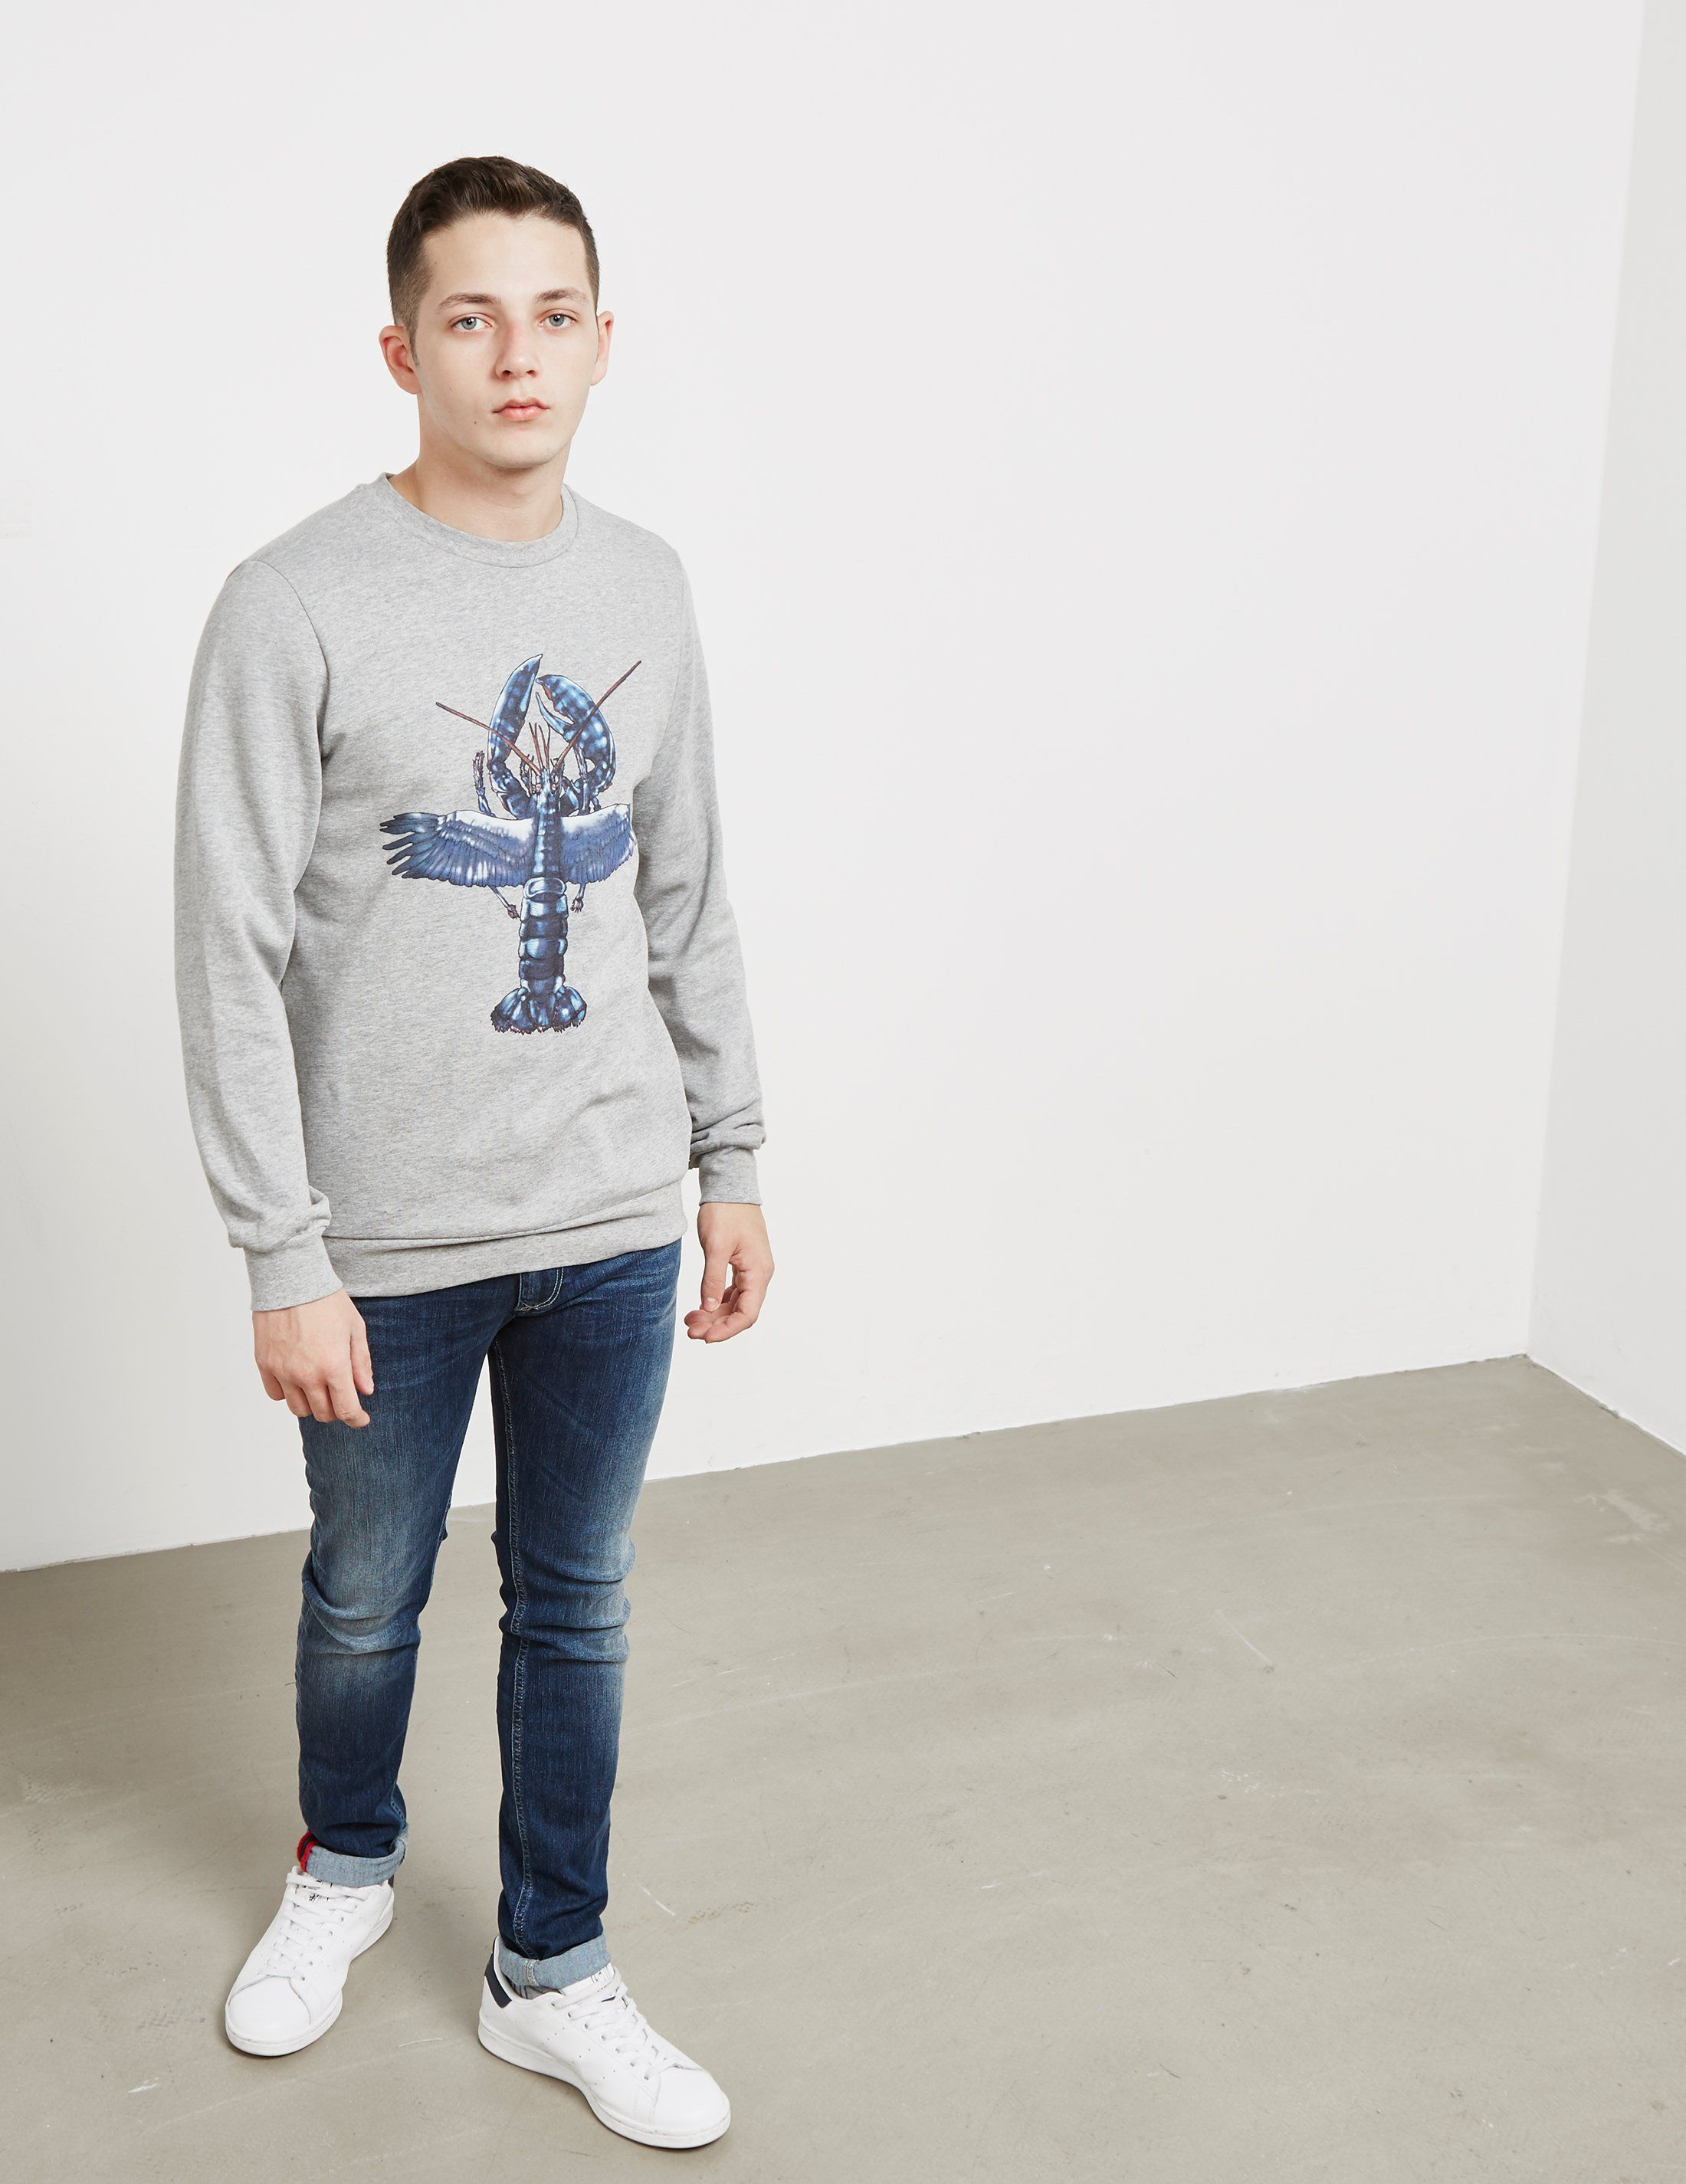 Lanvin Lobster Sweatshirt